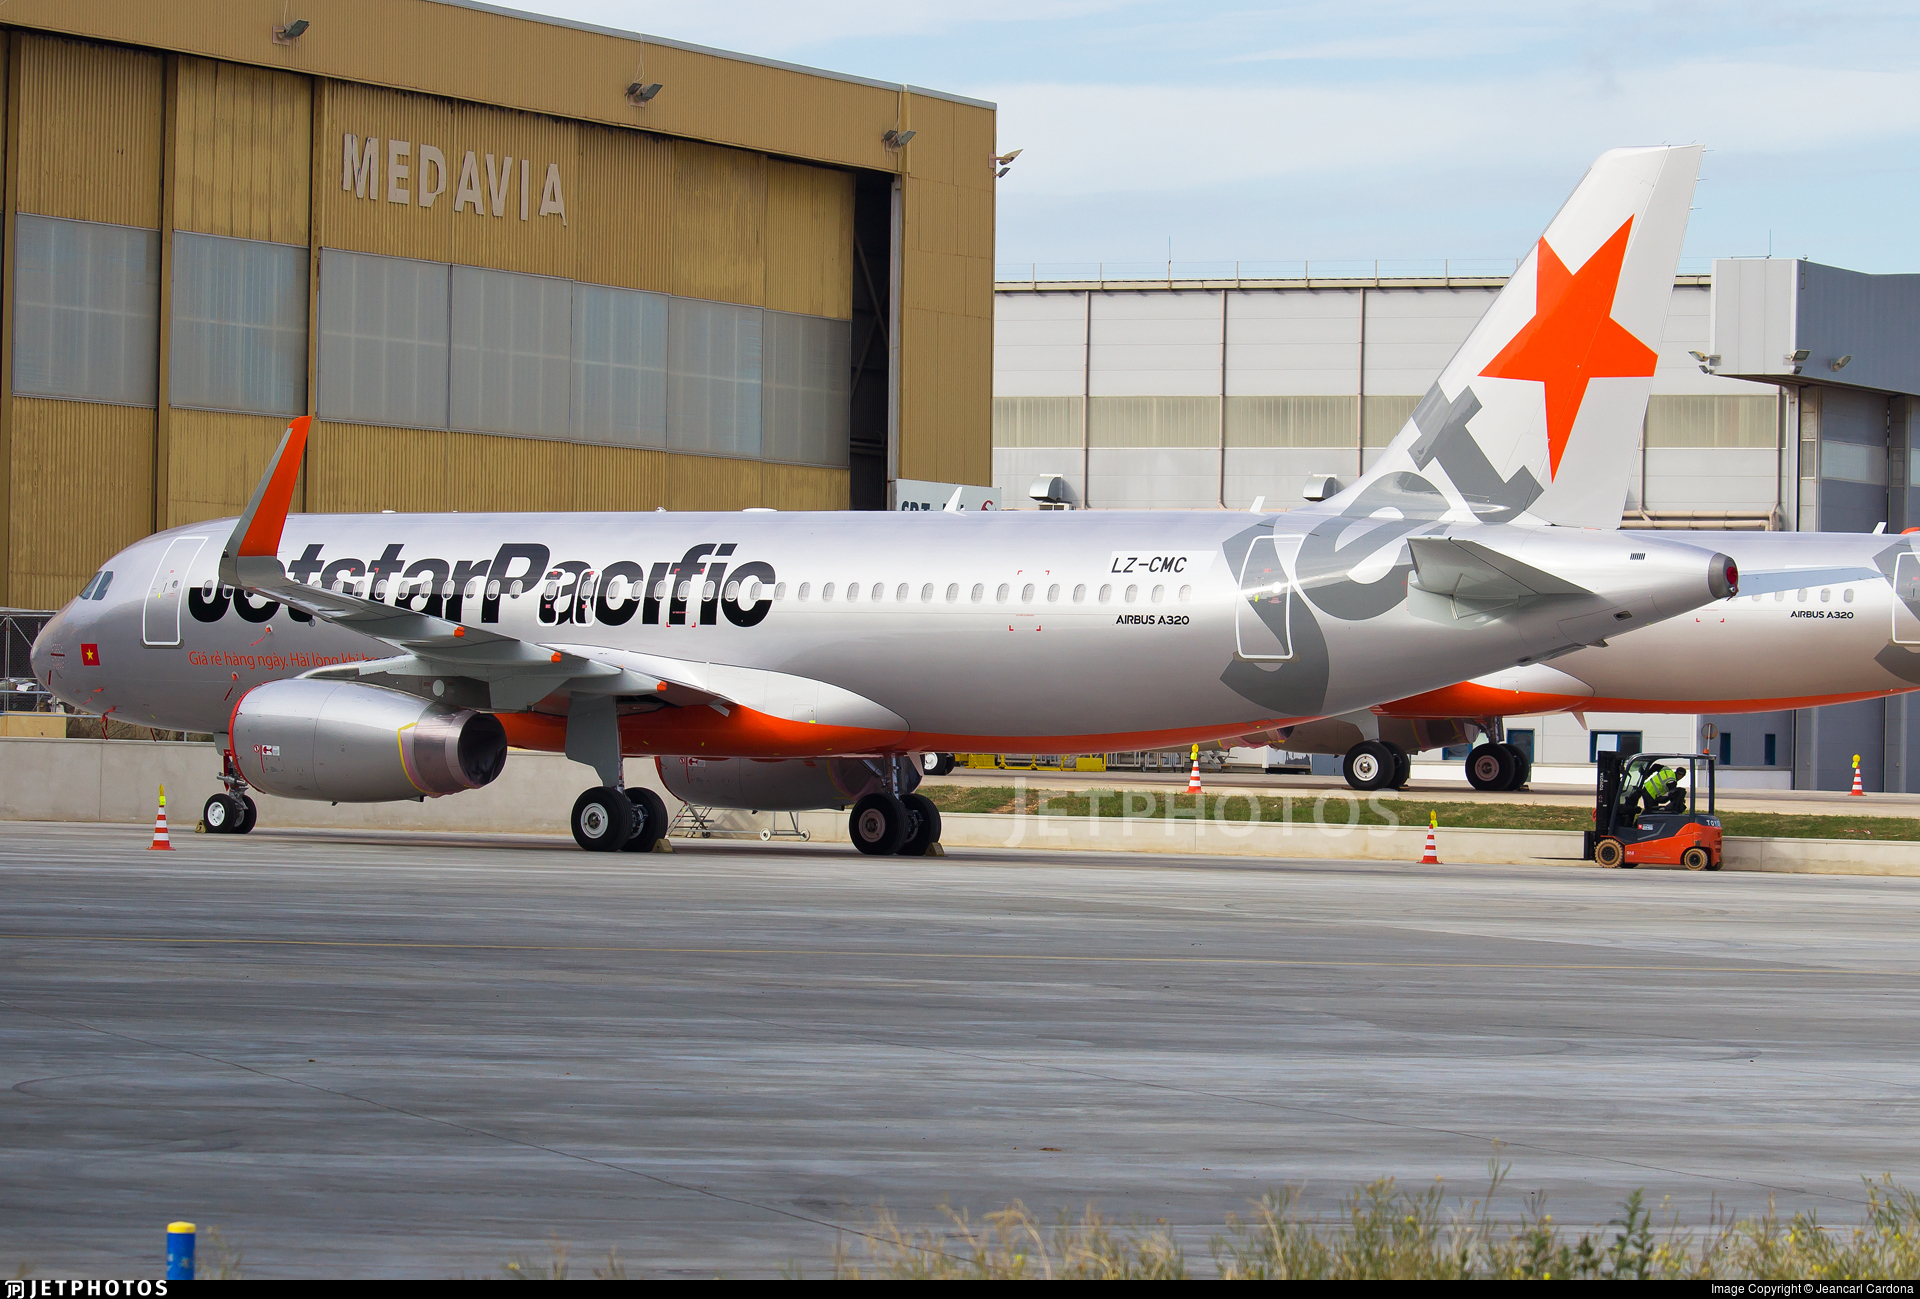 Lz cmc airbus a320 232 jetstar pacific airlines jeancarl lz cmc airbus a320 232 jetstar pacific airlines sciox Images